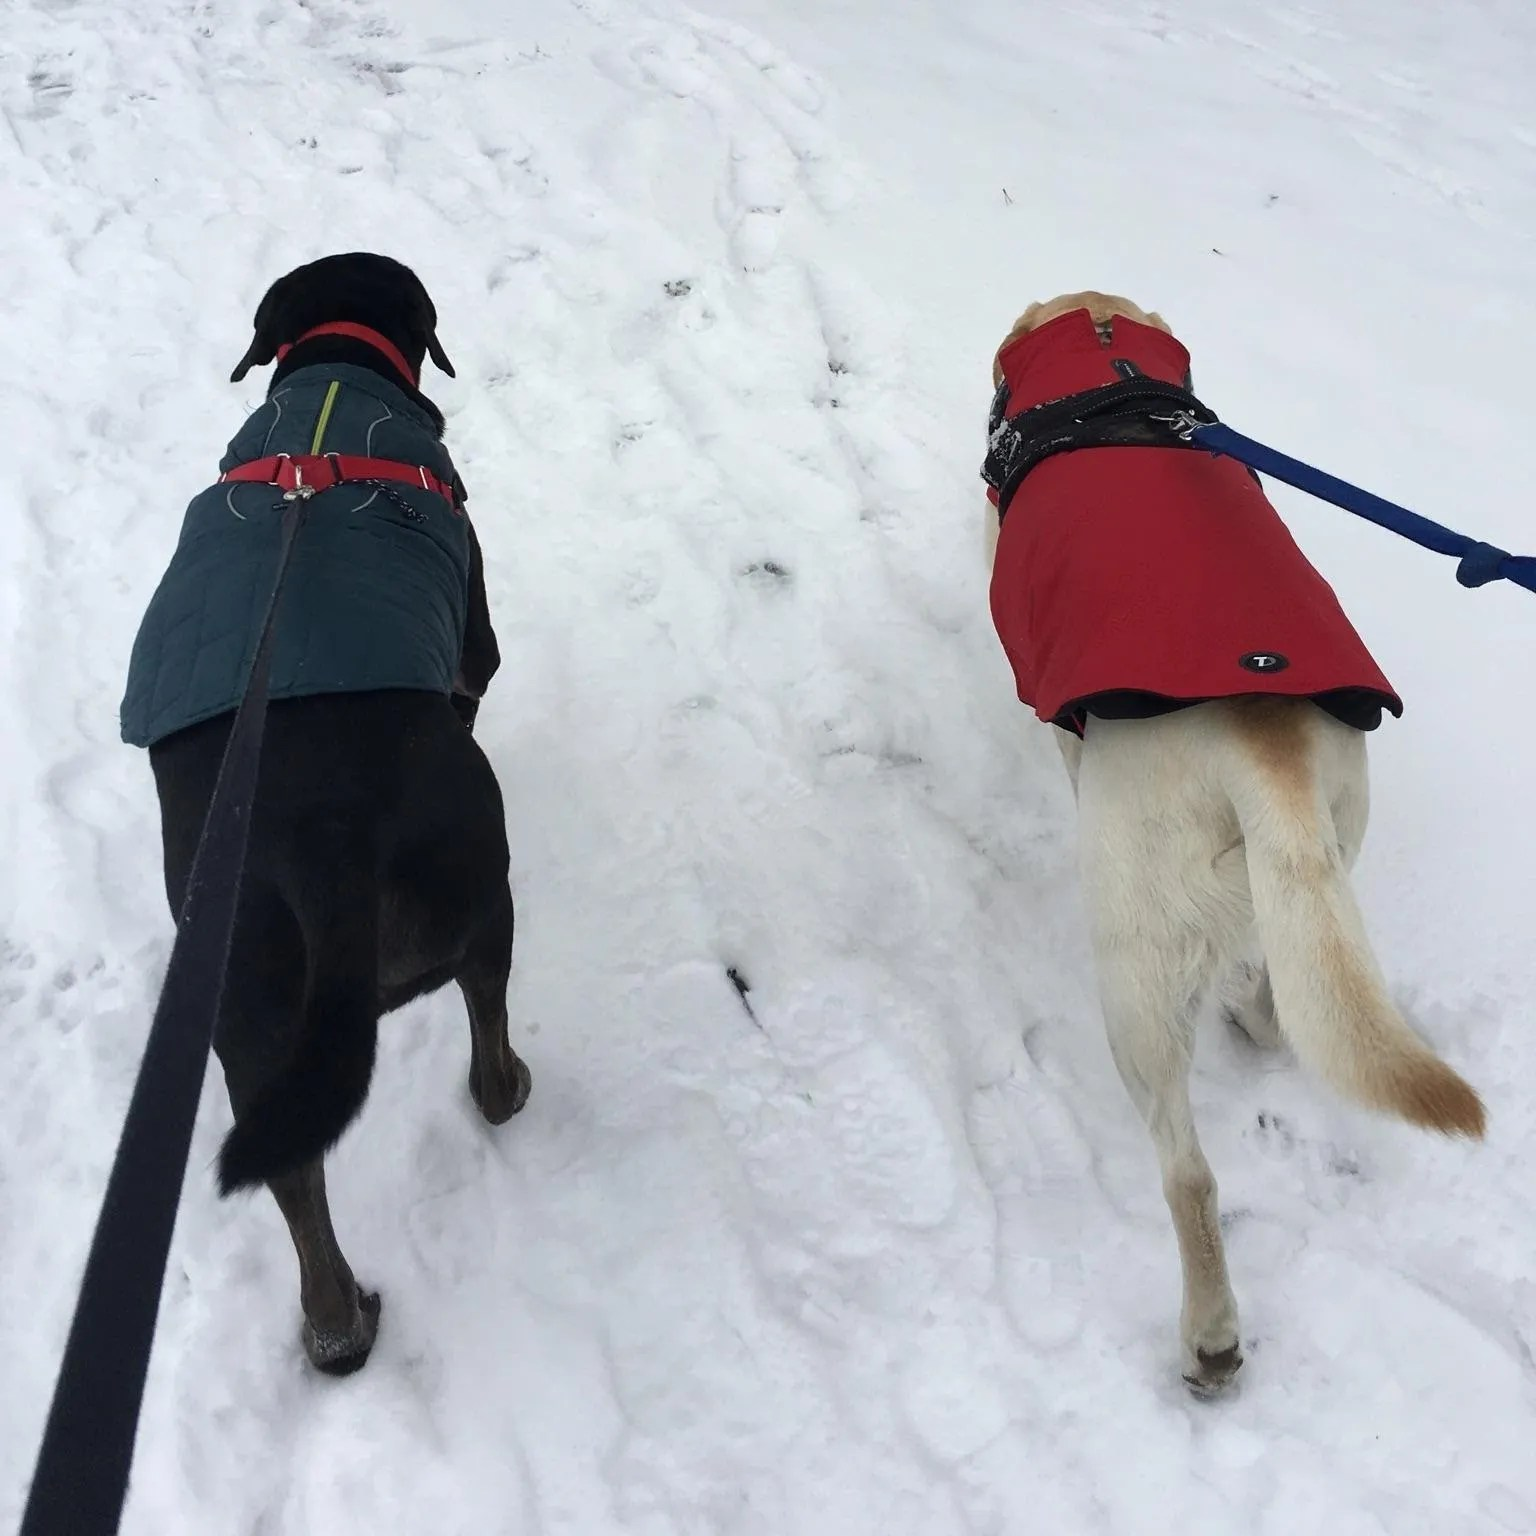 Ollie and Gilly walk the paths of Liberty Park